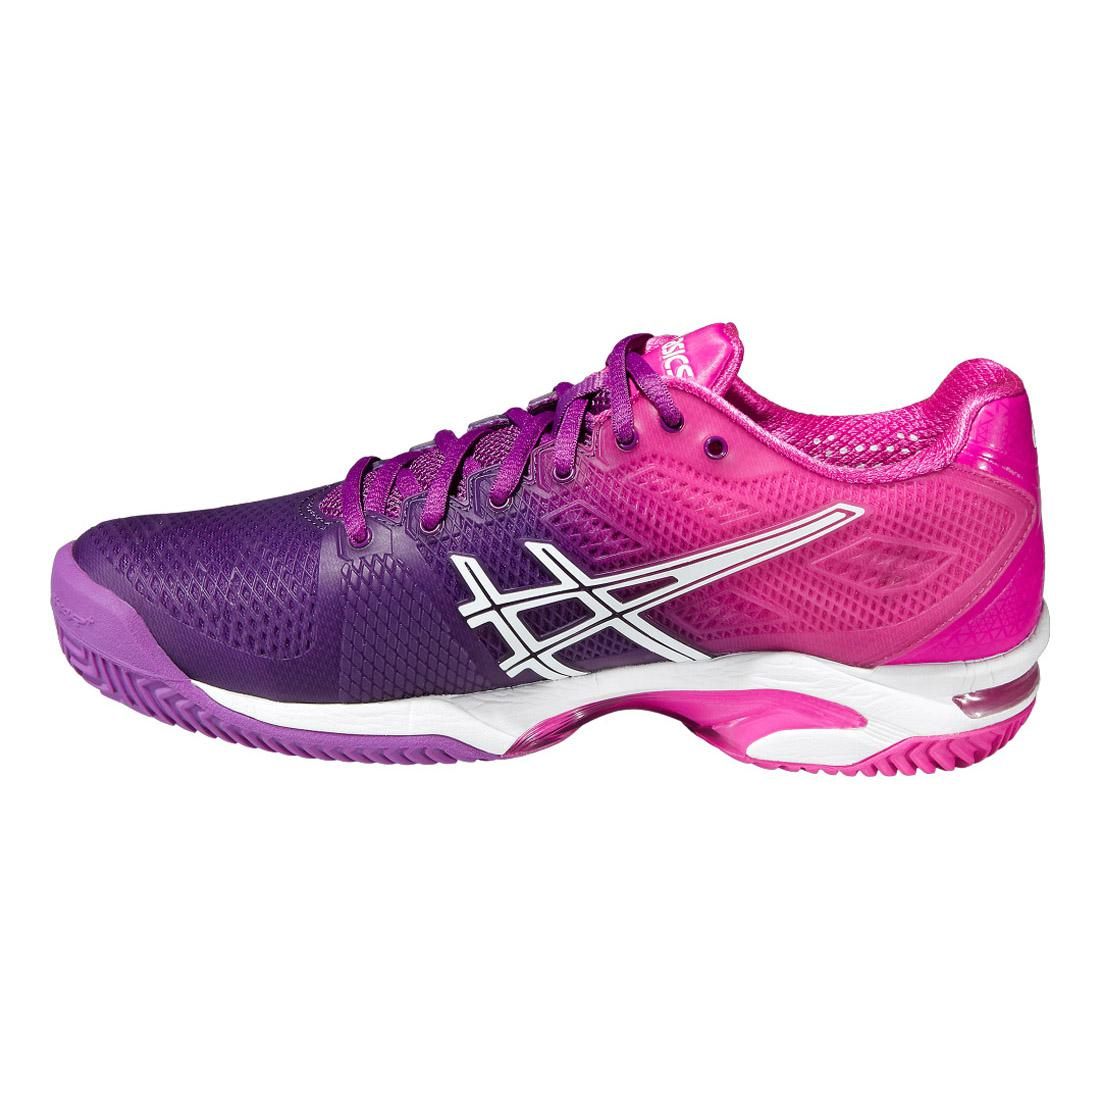 Asics Womens GEL Solution Speed 2 Clay Court Tennis Shoes - Purple